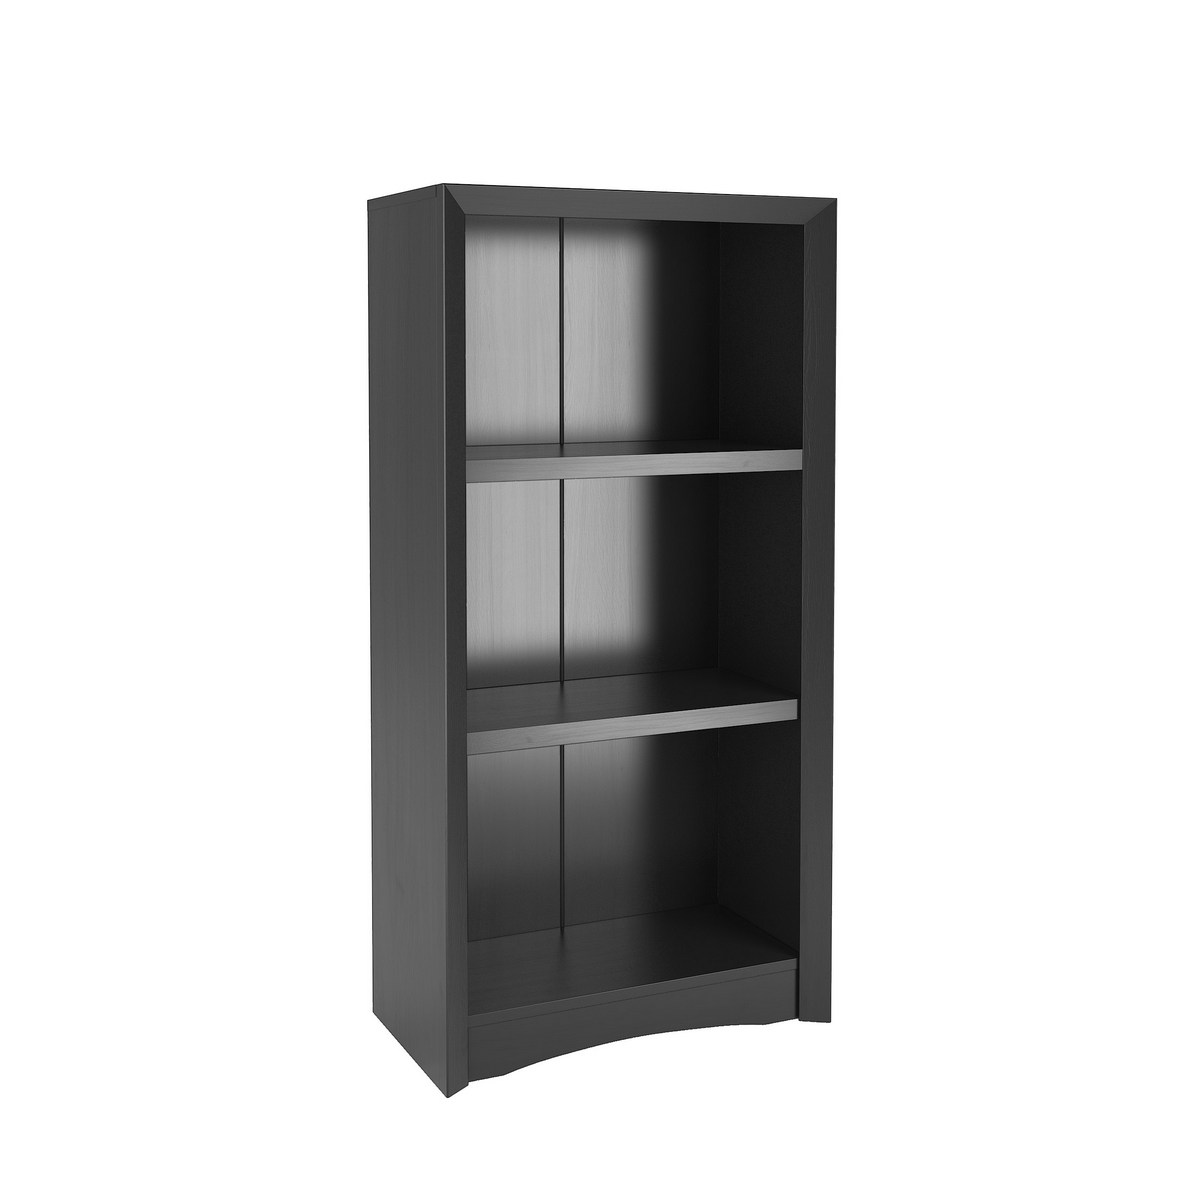 Corliving Lsa 807 S Quadra 47 Tall Bookcase In Black Faux Woodgrain Finish